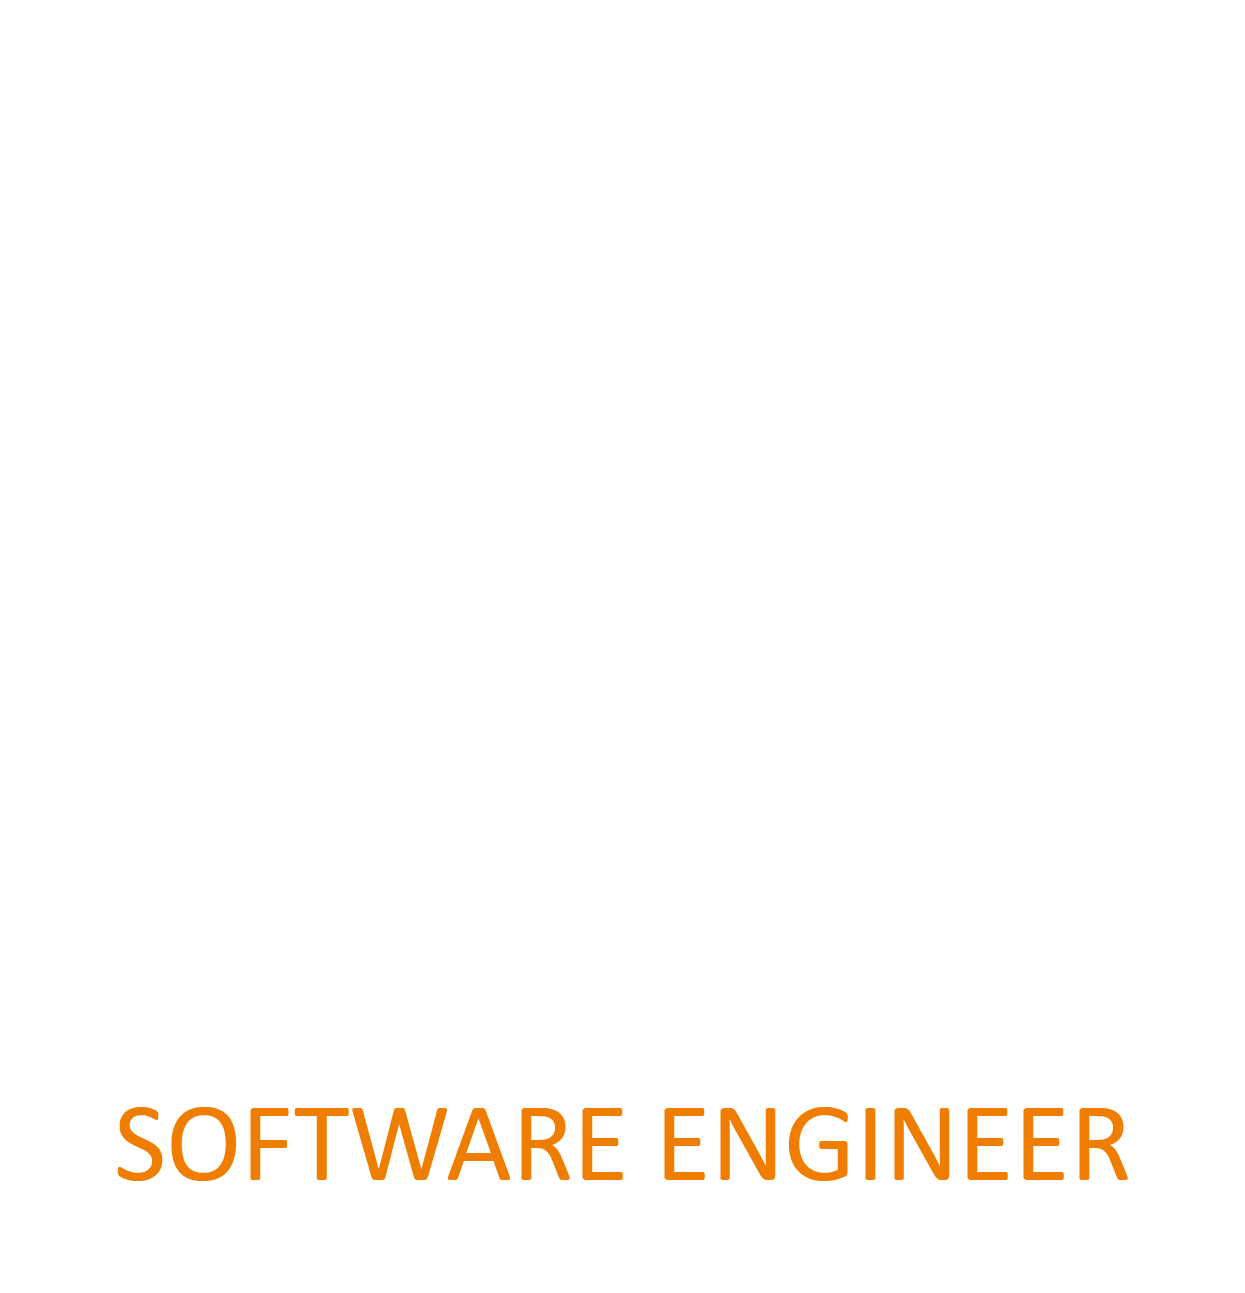 Engineer clipart software engineer. Our portfolio jambit gmbh